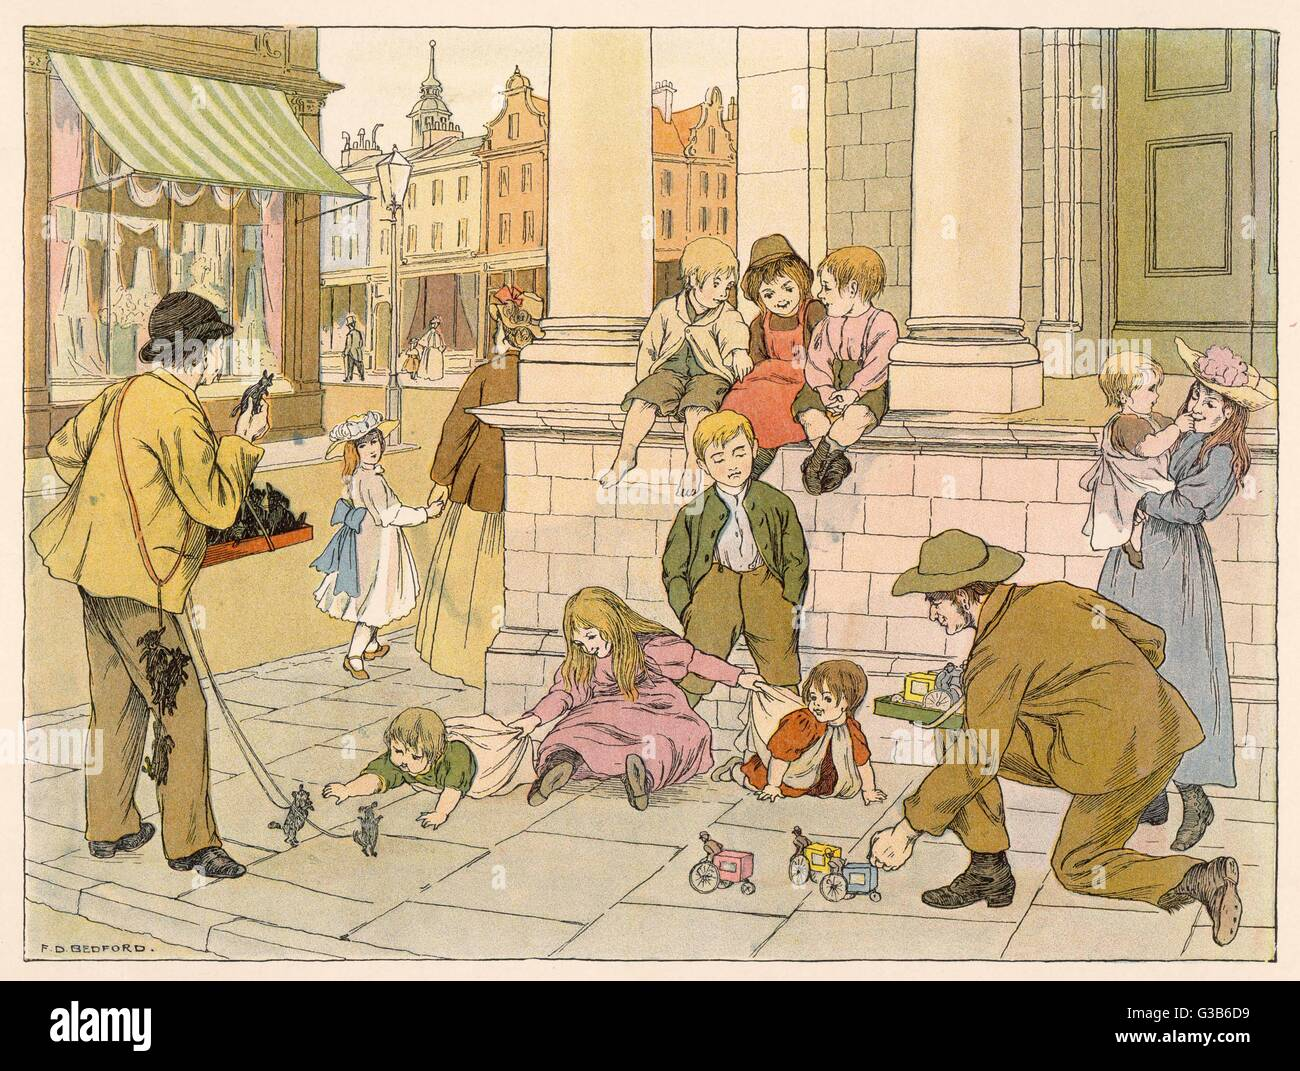 Kerbstone merchants delight  the local children by  demonstrating their toys on  the pavement.       Date: 1899 - Stock Image